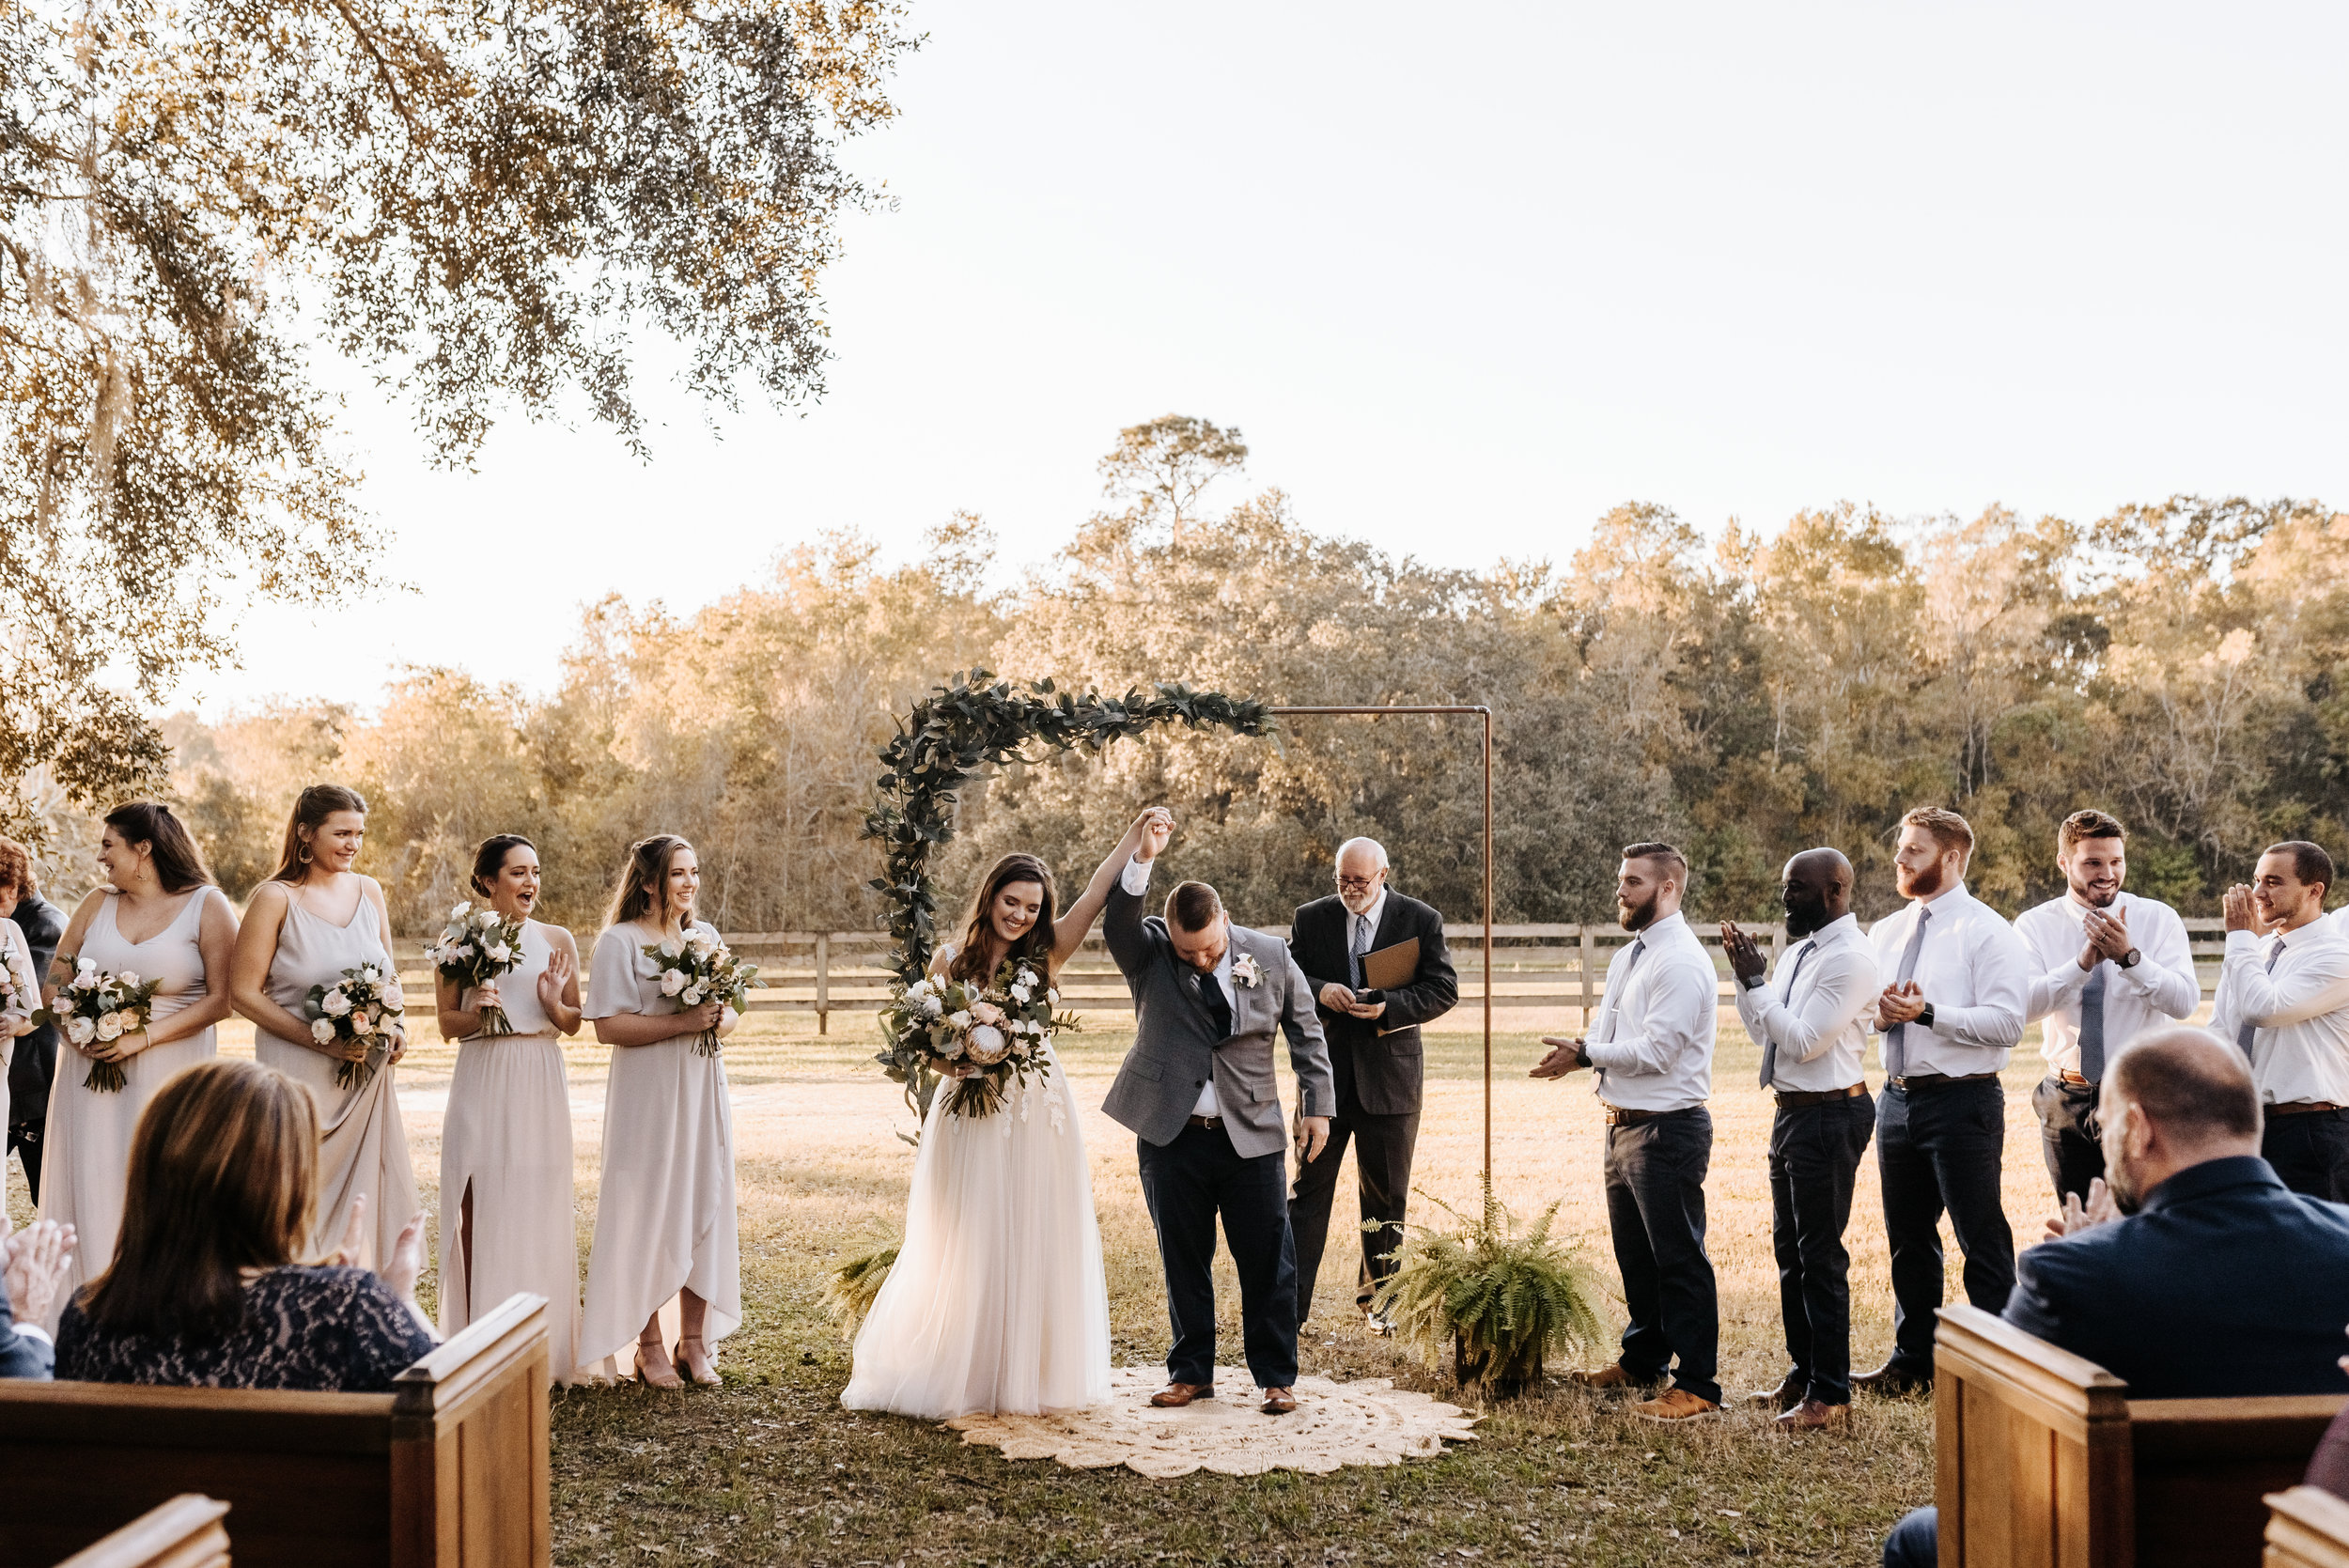 Morgan-Brandon-Wedding-All-4-One-Farms-Jacksonville-Florida-Photographer-Photography-by-V-6670.jpg